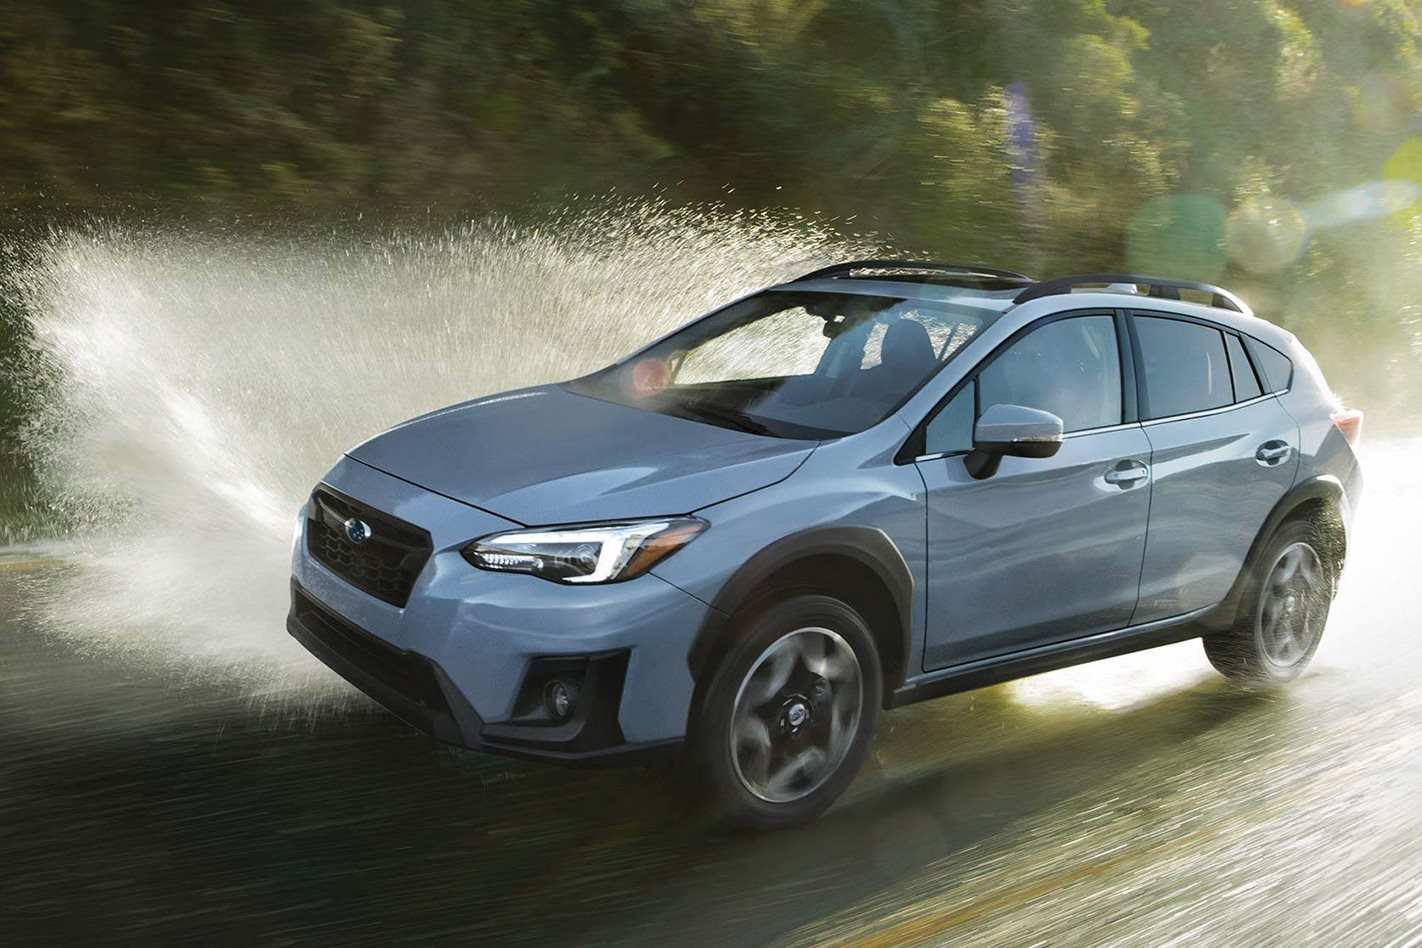 20 Concept of Subaru Xv 2020 Australia First Drive for Subaru Xv 2020 Australia